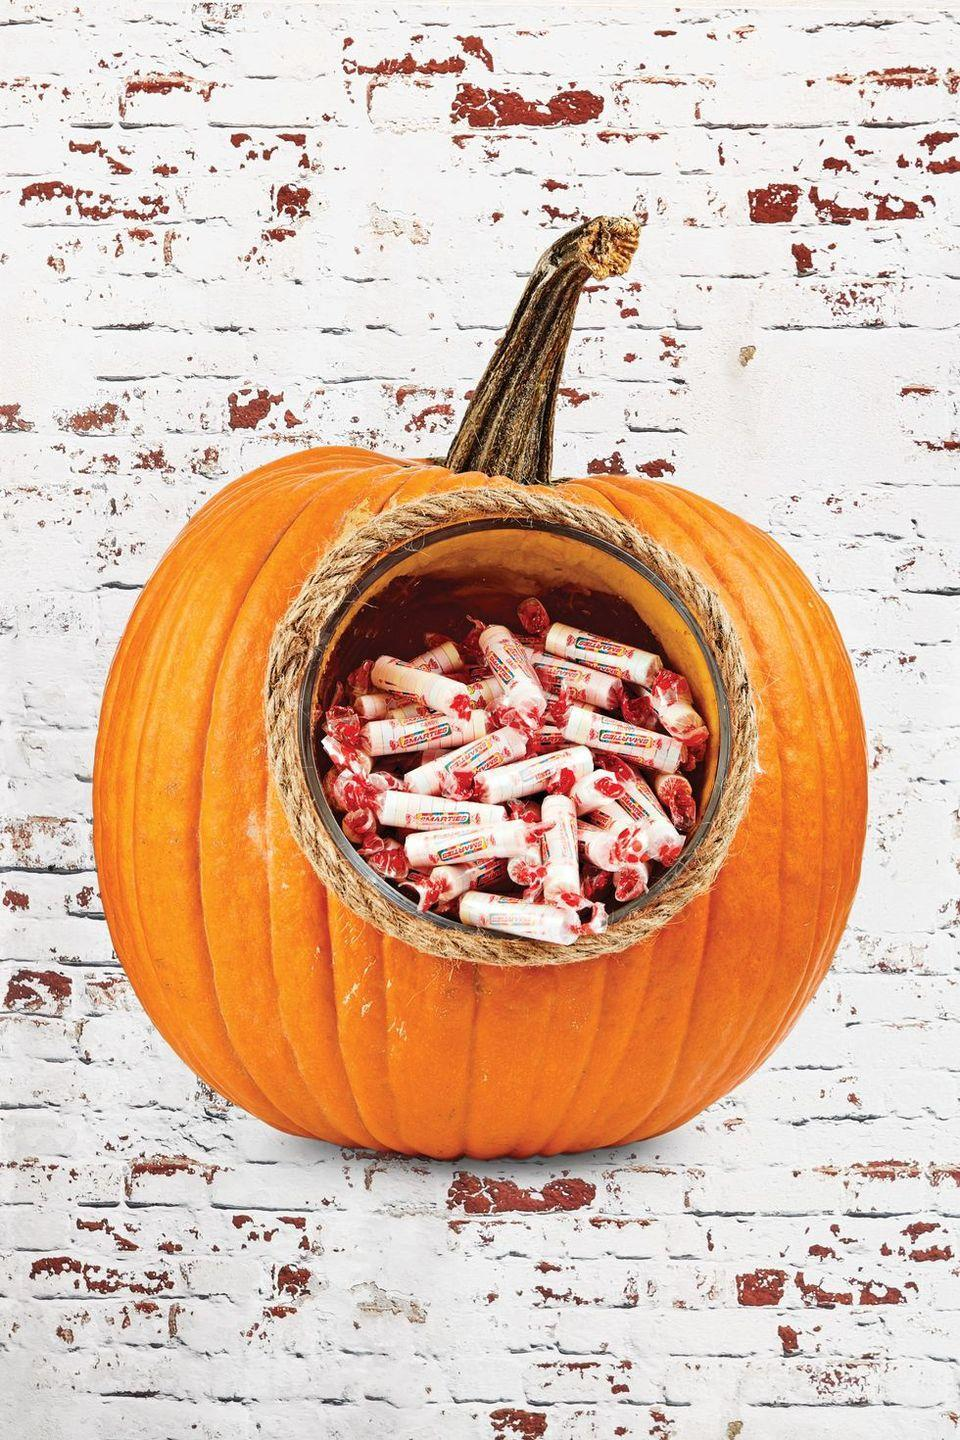 <p>This homemade beauty beats out any store-bought candy bowl. Just trace the bottom of a glass bowl or storage container to ensure that it'll fit inside. That way, you can safely store candy without covering it in the pumpkin's natural goop. </p>